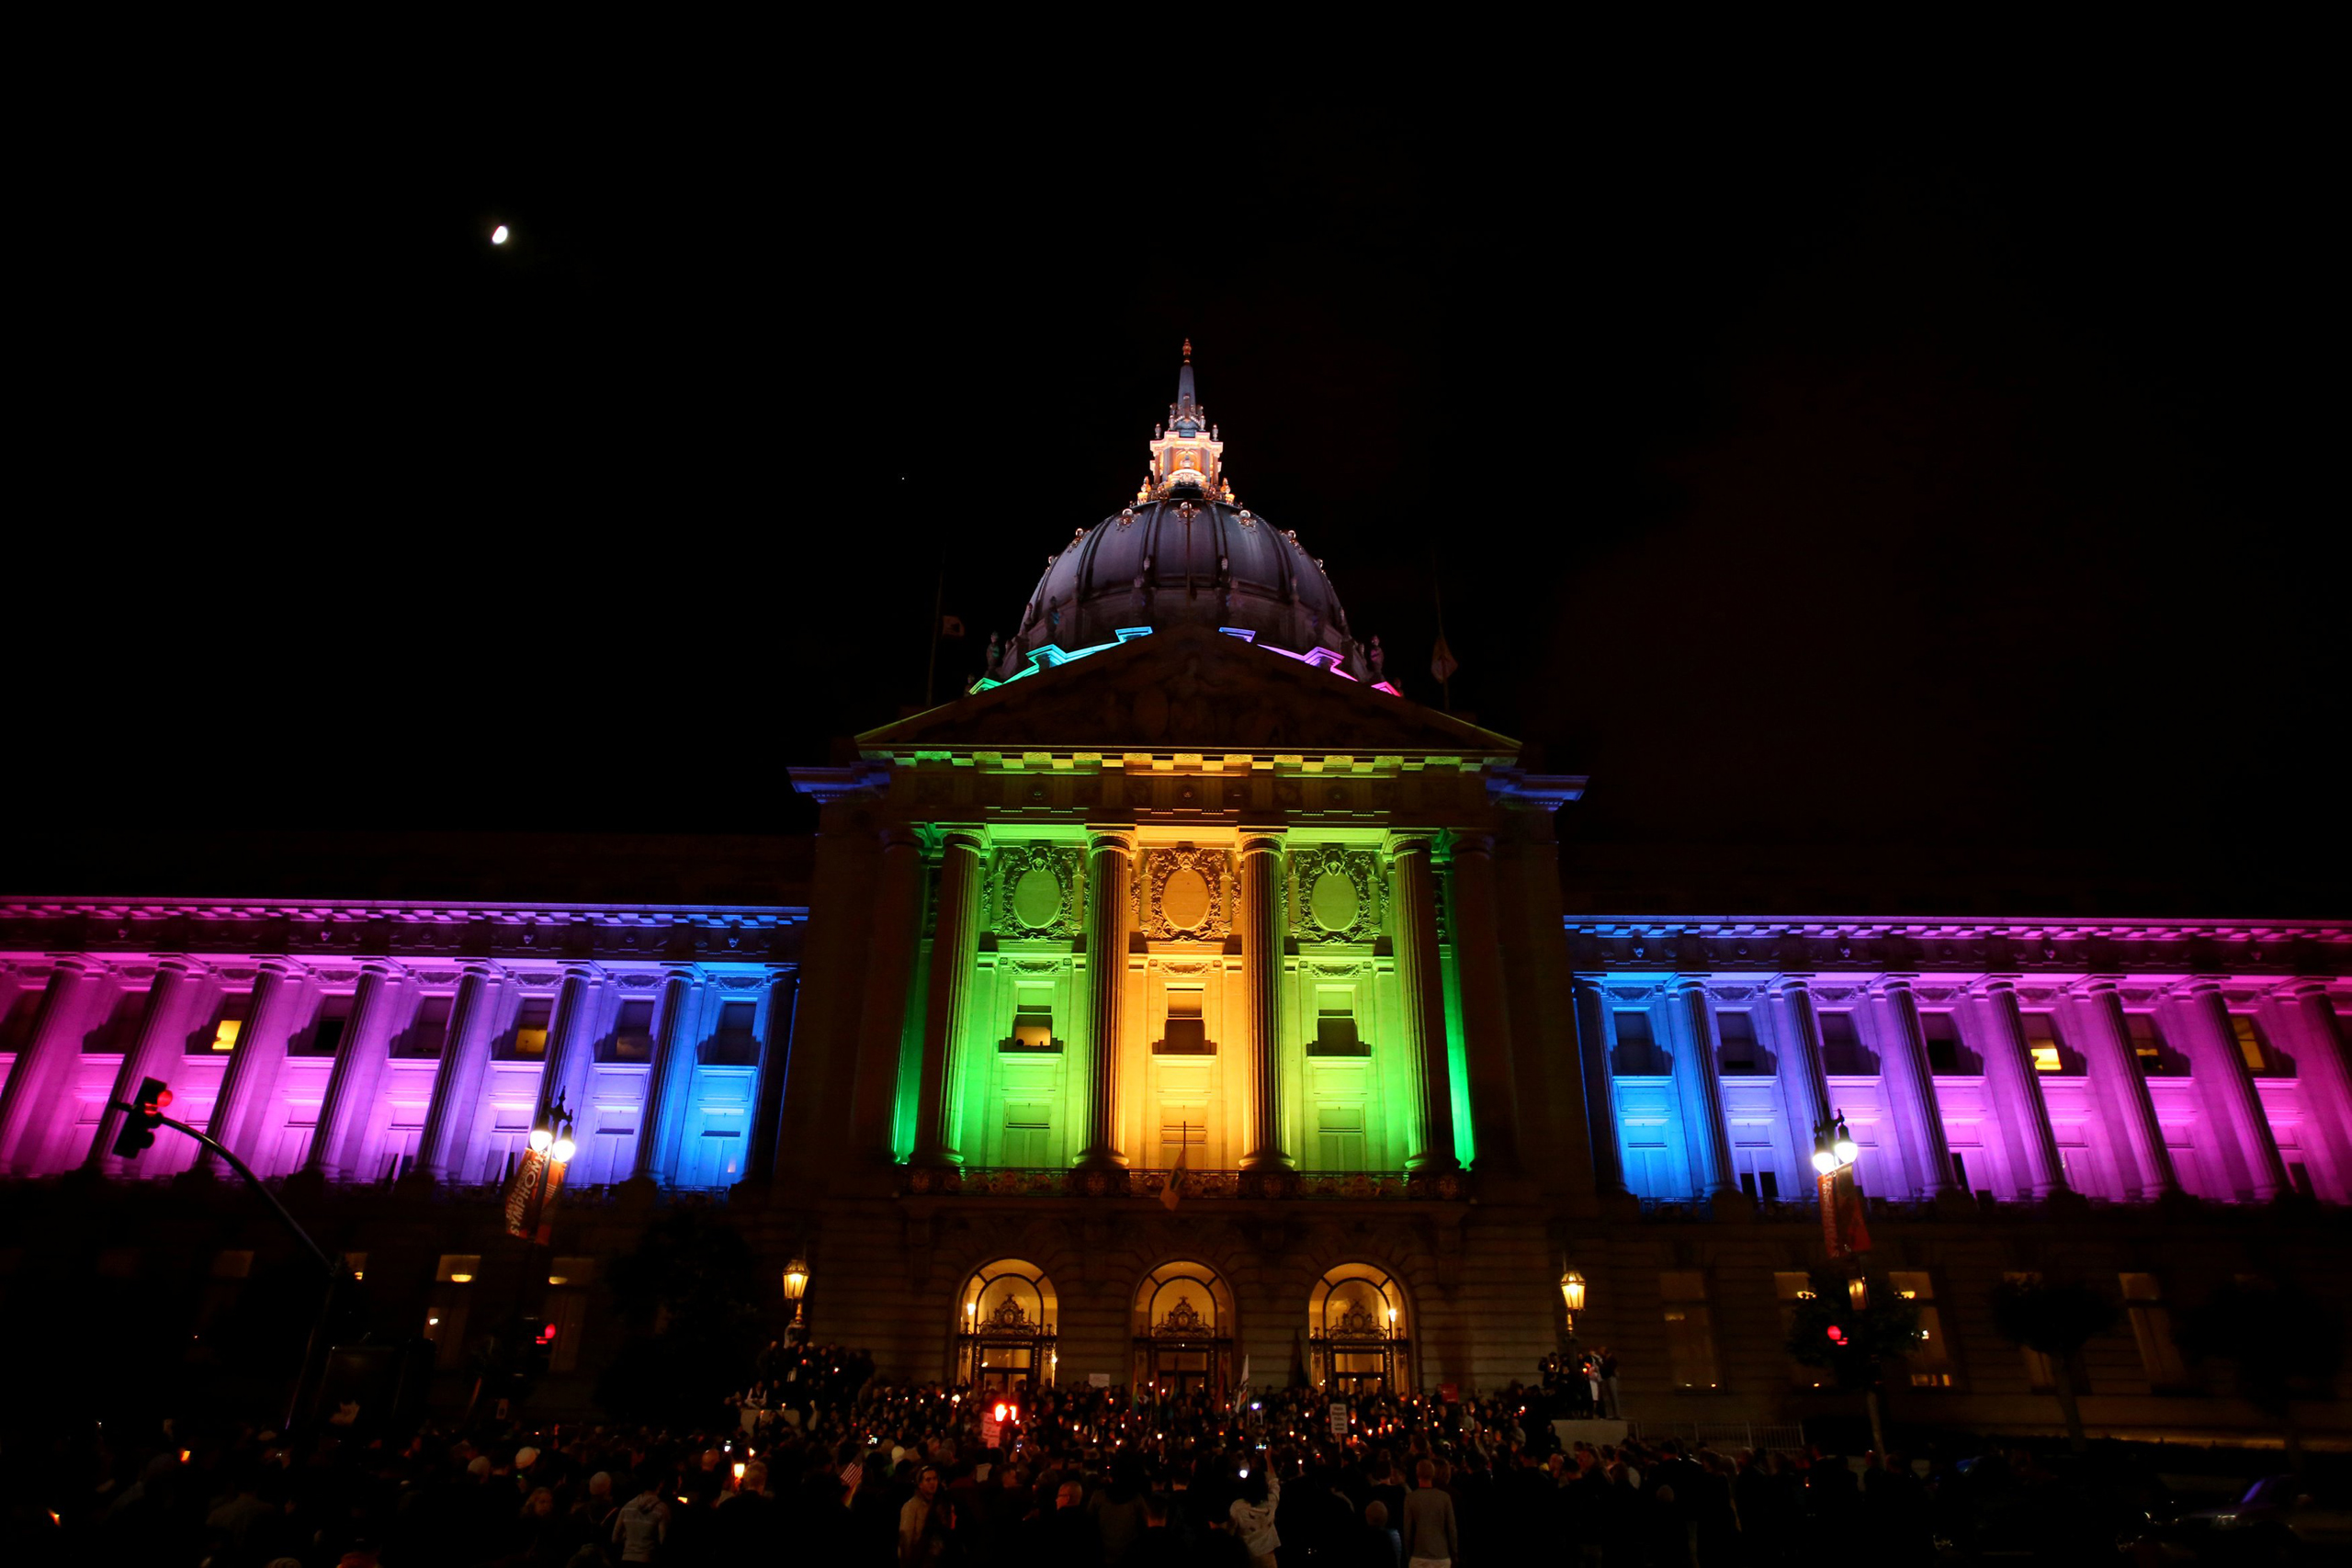 People attend a candlelight vigil for the victims of the attack on a gay nightclub in Orlando, held in San Francisco on June 12, 2016.